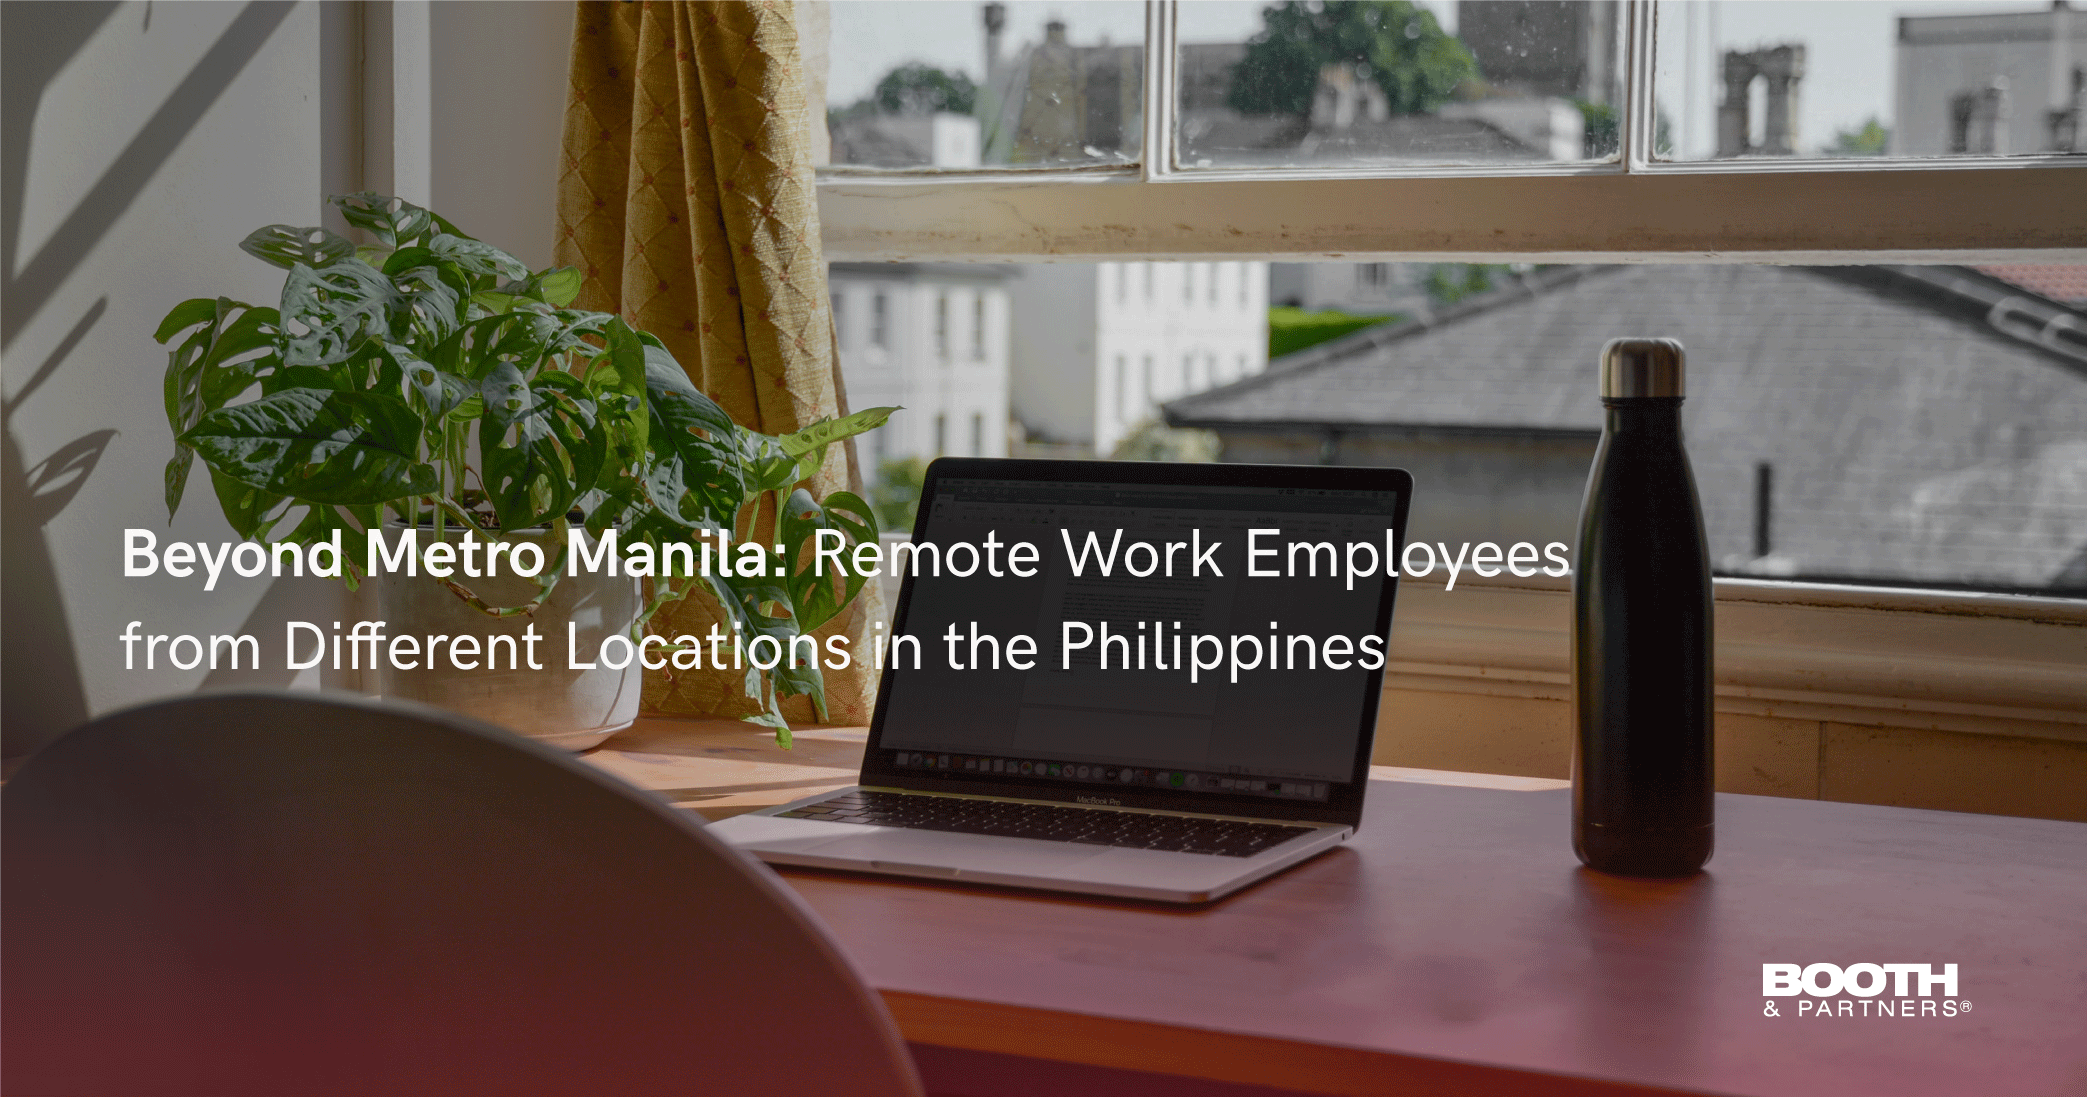 Beyond Metro Manila: Remote Work Employees from Different Locations in the Philippines